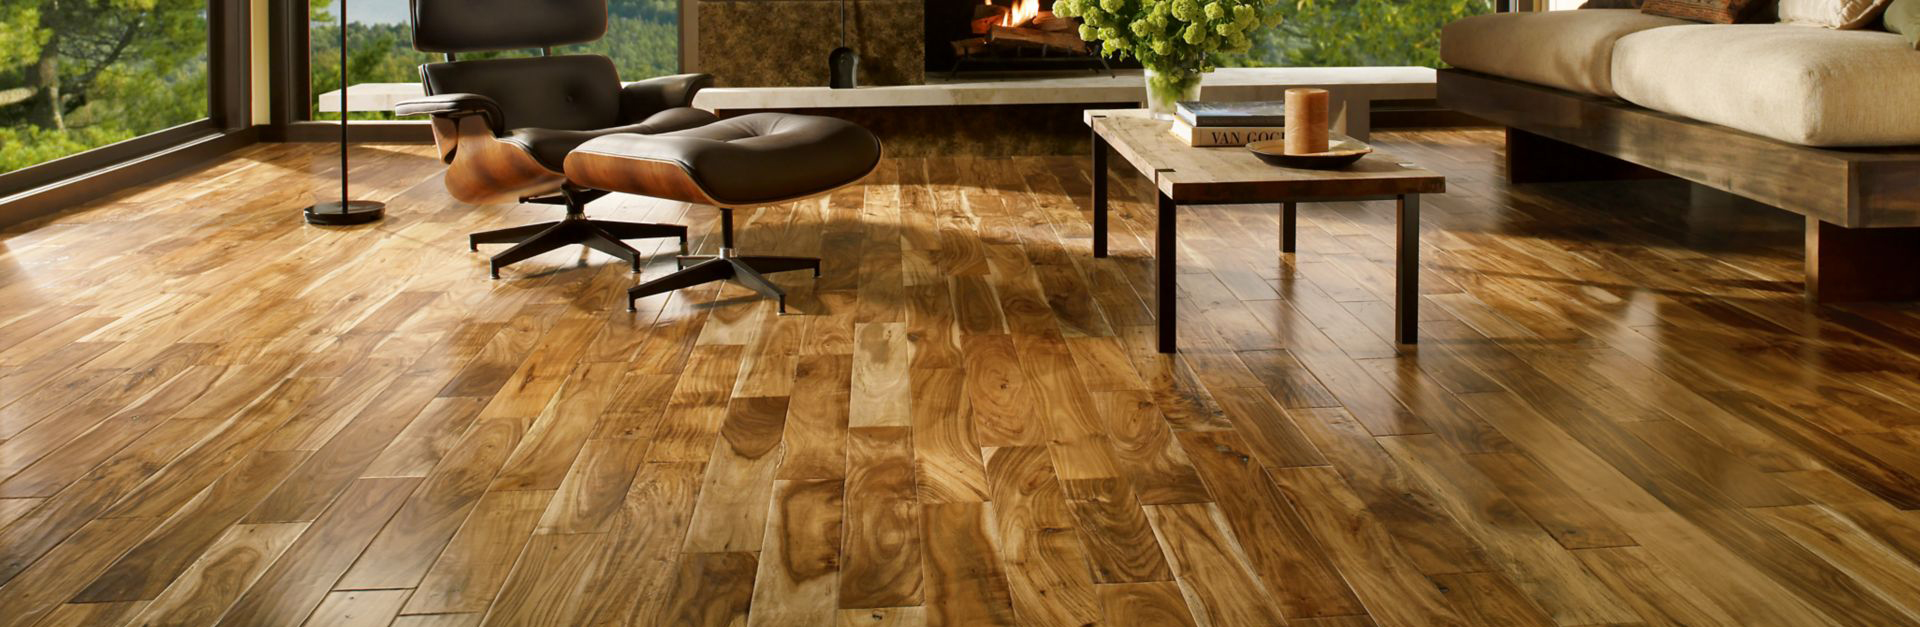 Acacia Engineered Hardwood